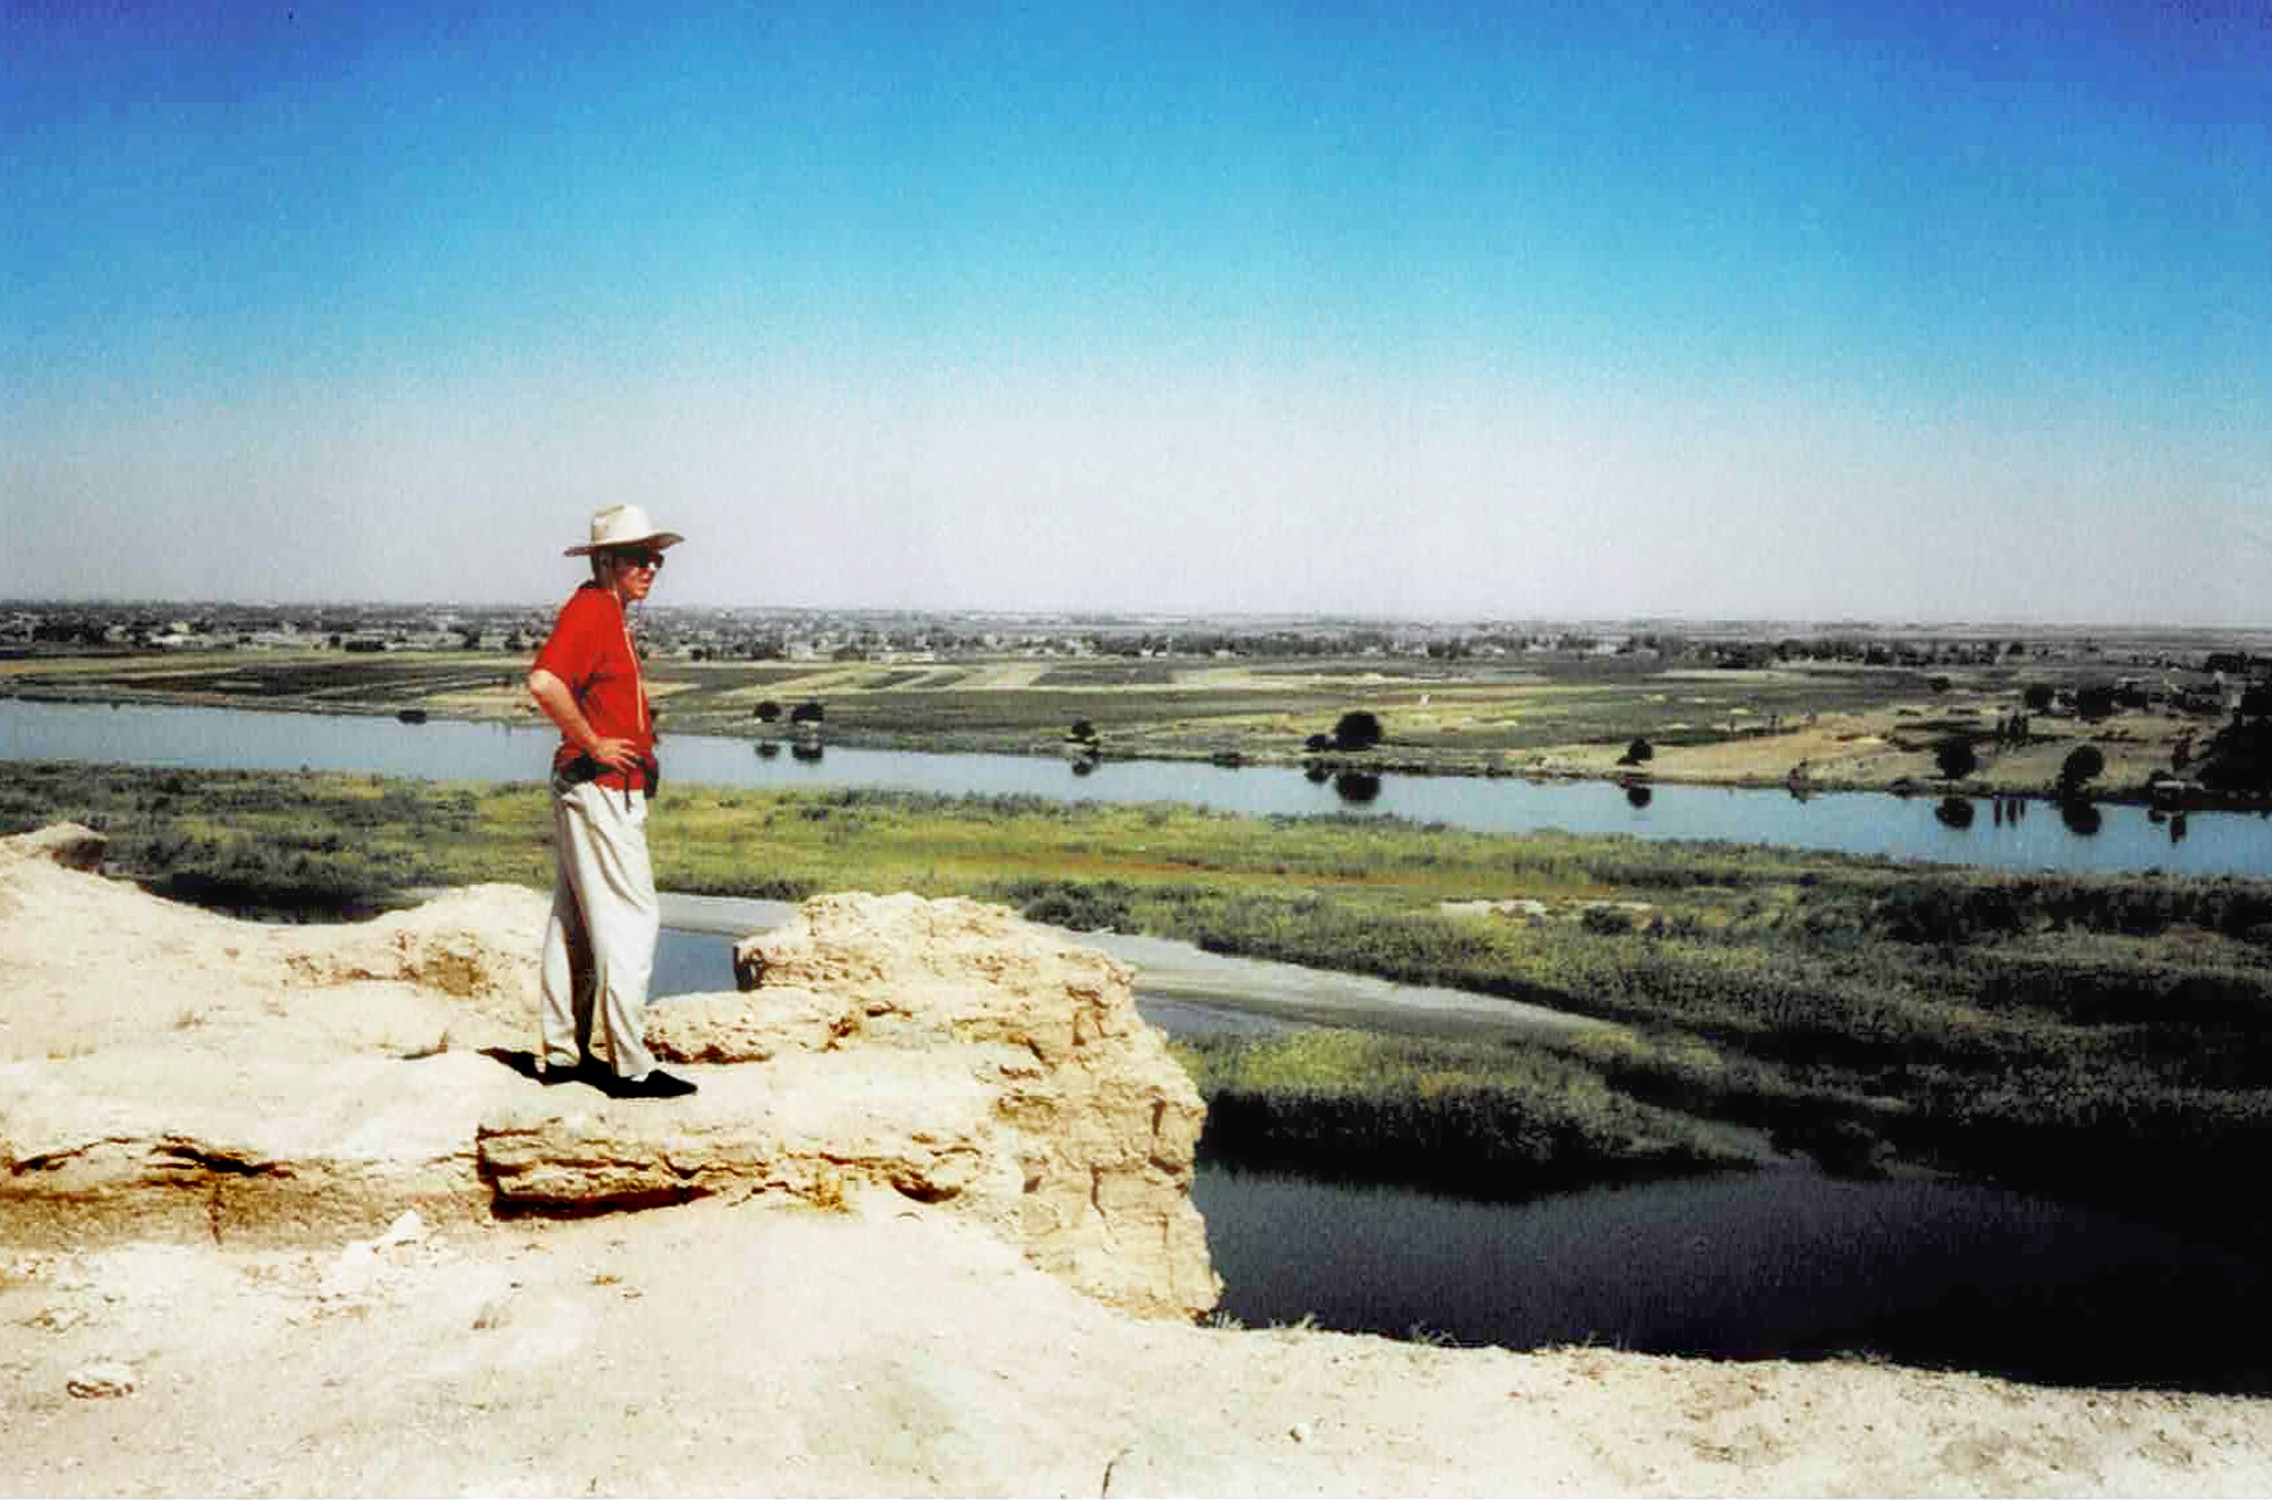 Man on a stony outcrop overlooking a river